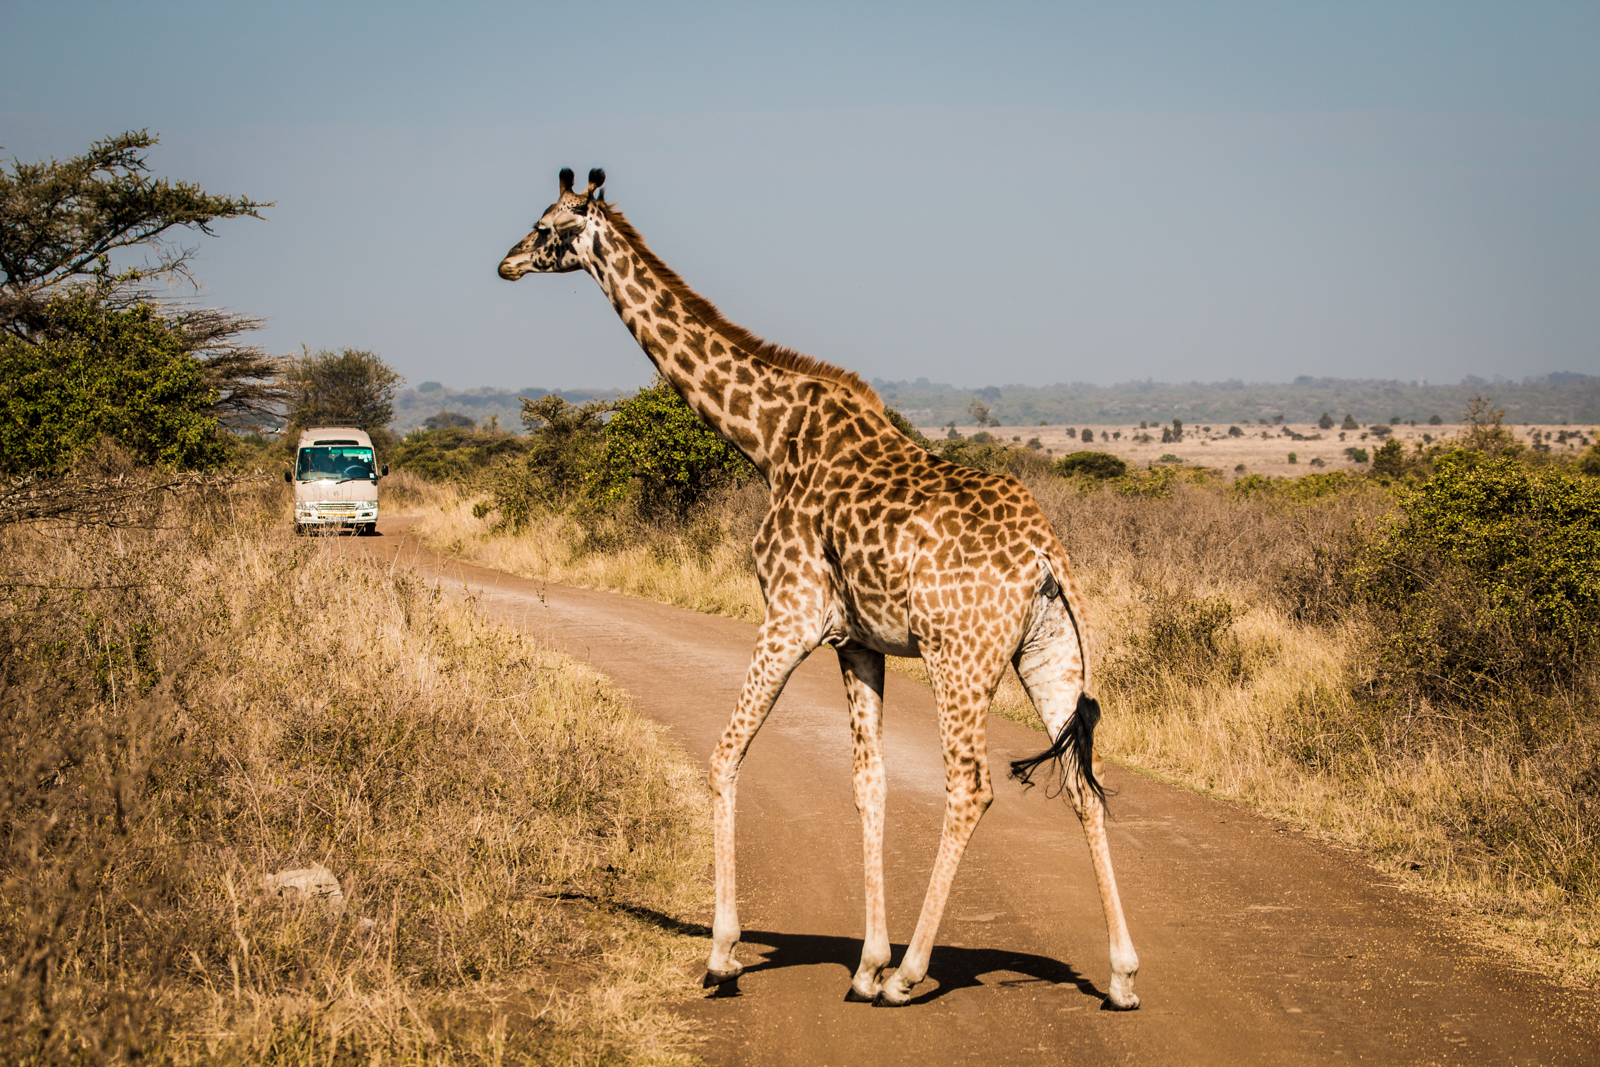 Giraffe Crossing up ahead, proceed with caution.